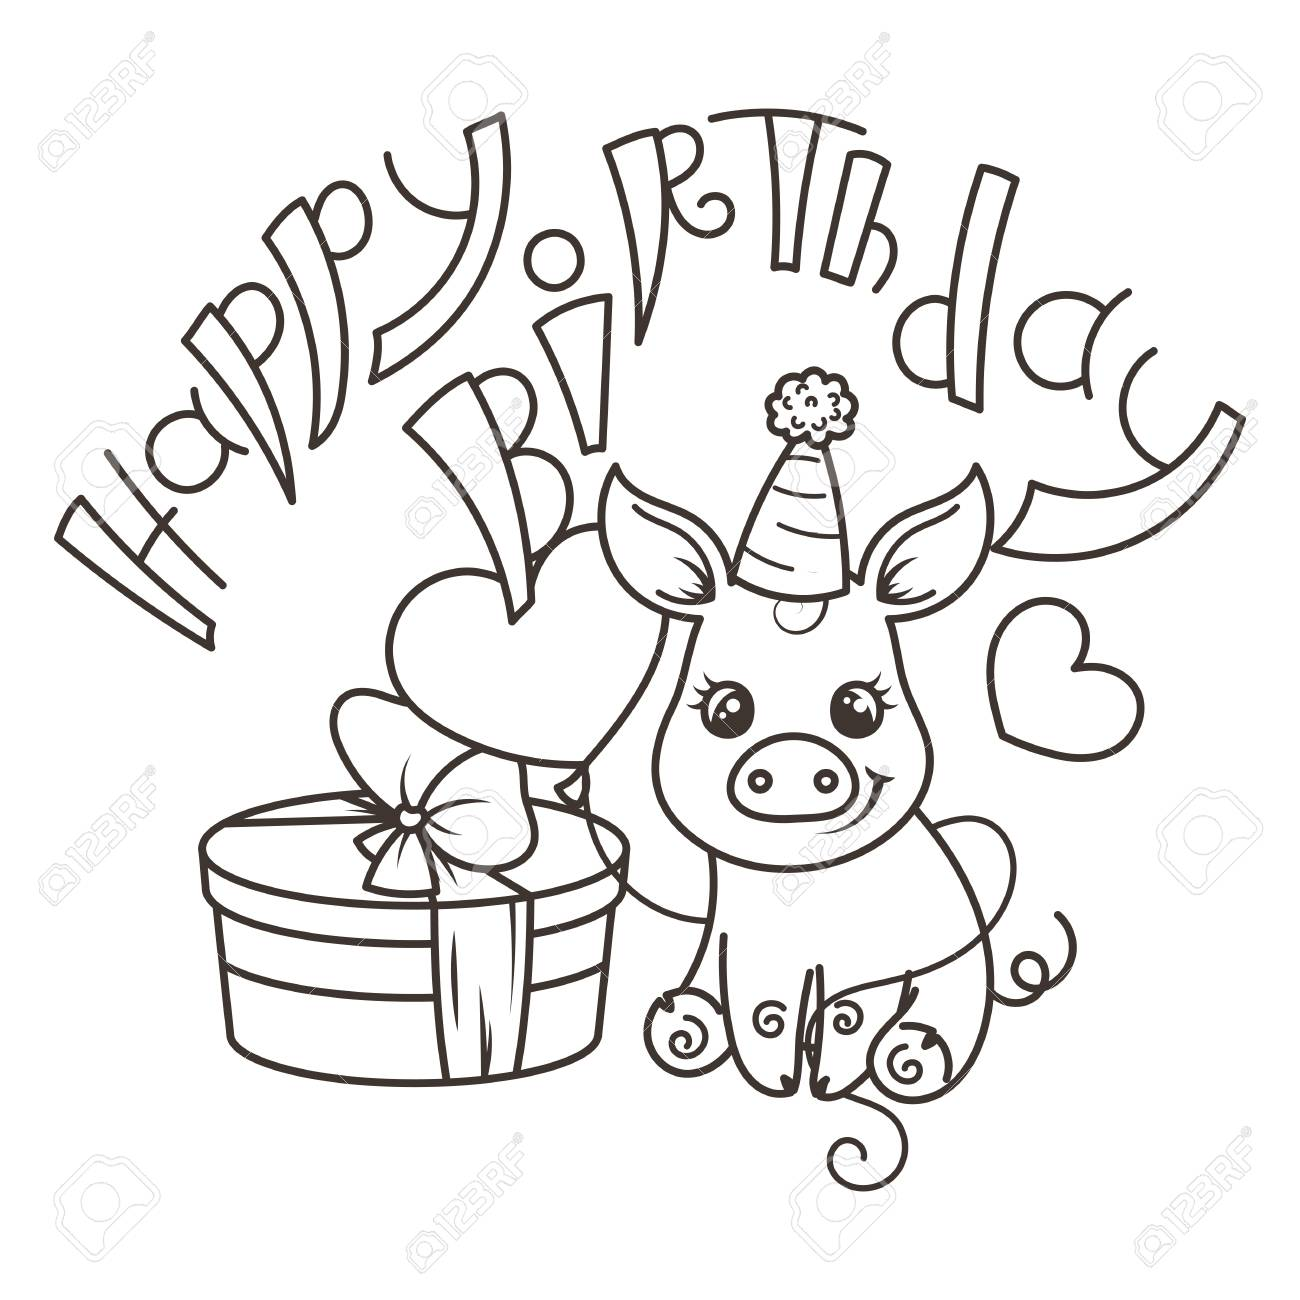 Happy Birthday Cute Cartoon Baby Pig With Holiday Box Vector Royalty Free Cliparts Vectors And Stock Illustration Image 103381653